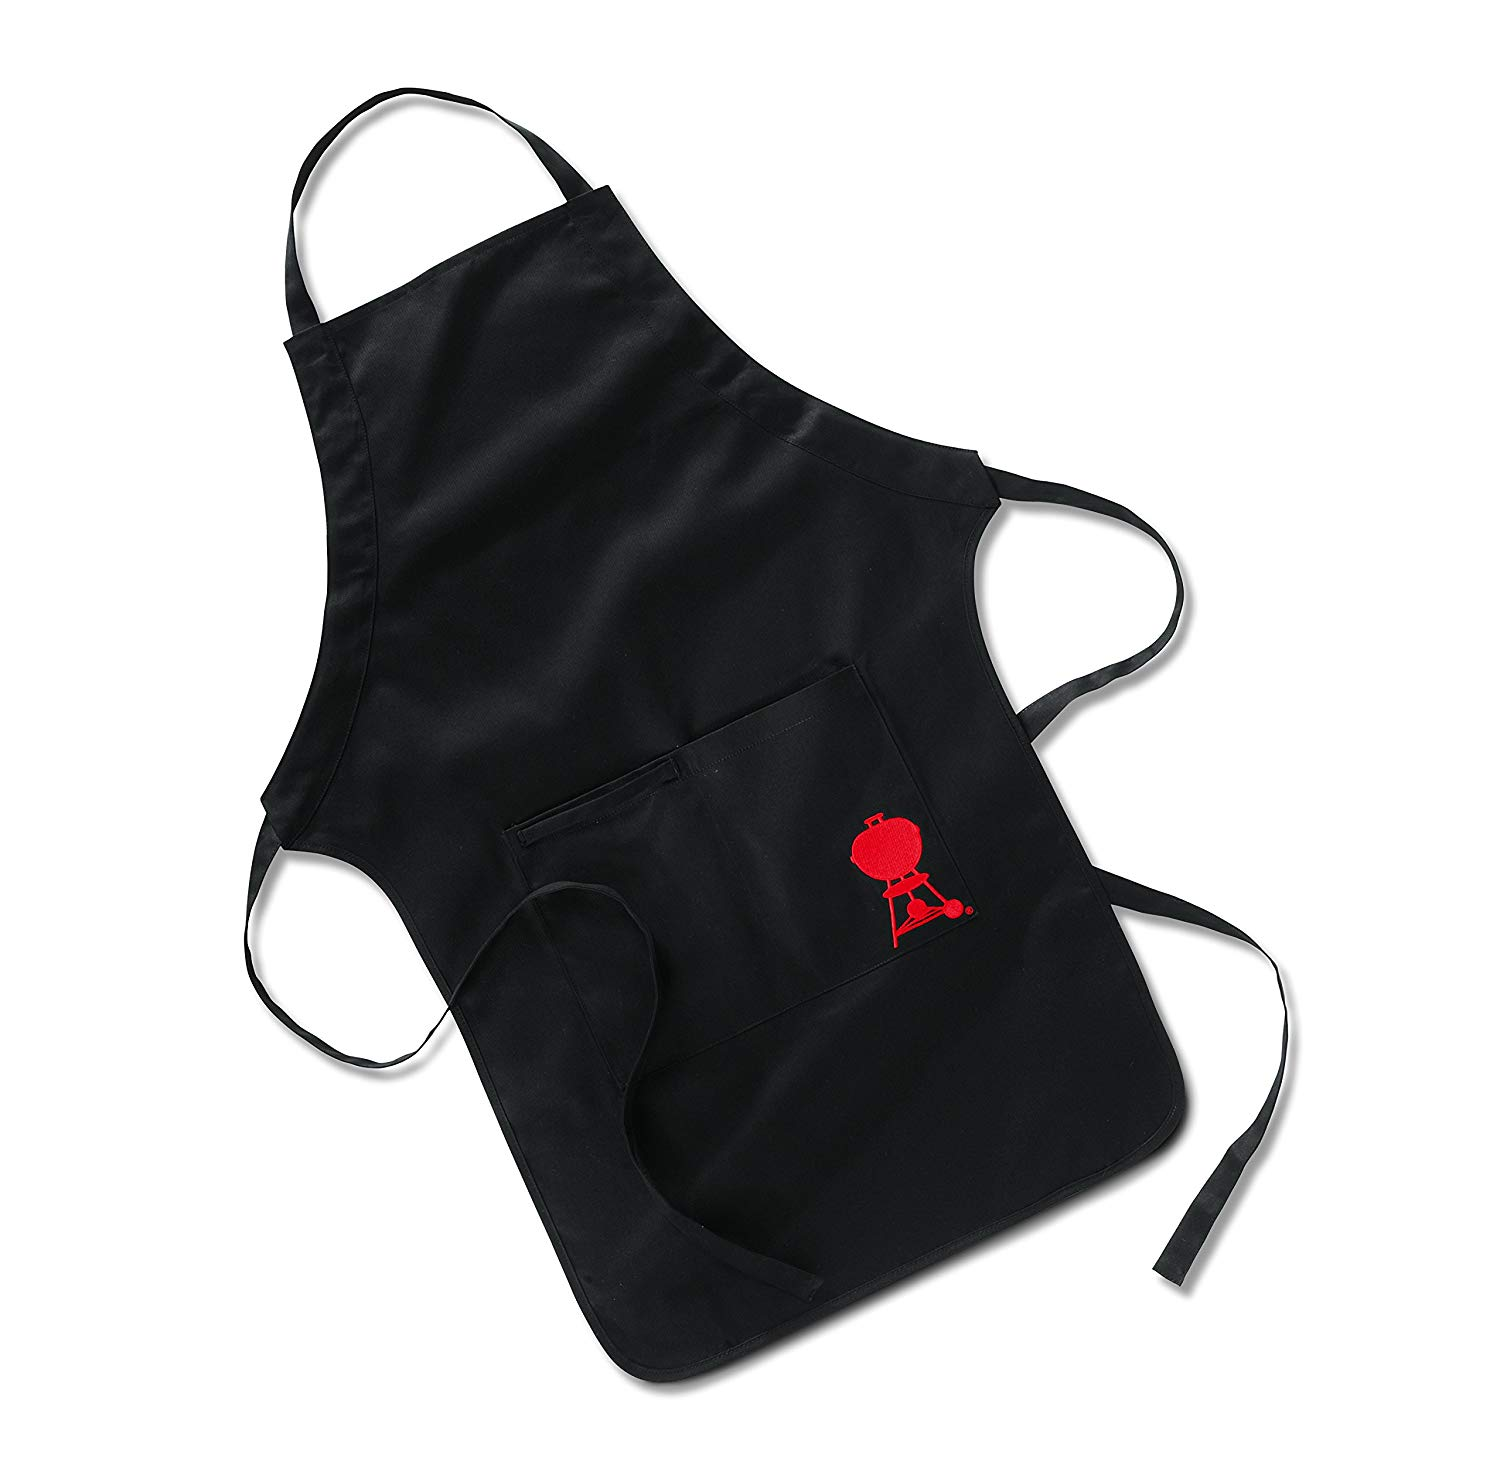 【SARABBQ】Adjustable BBQ Cooking baking apron